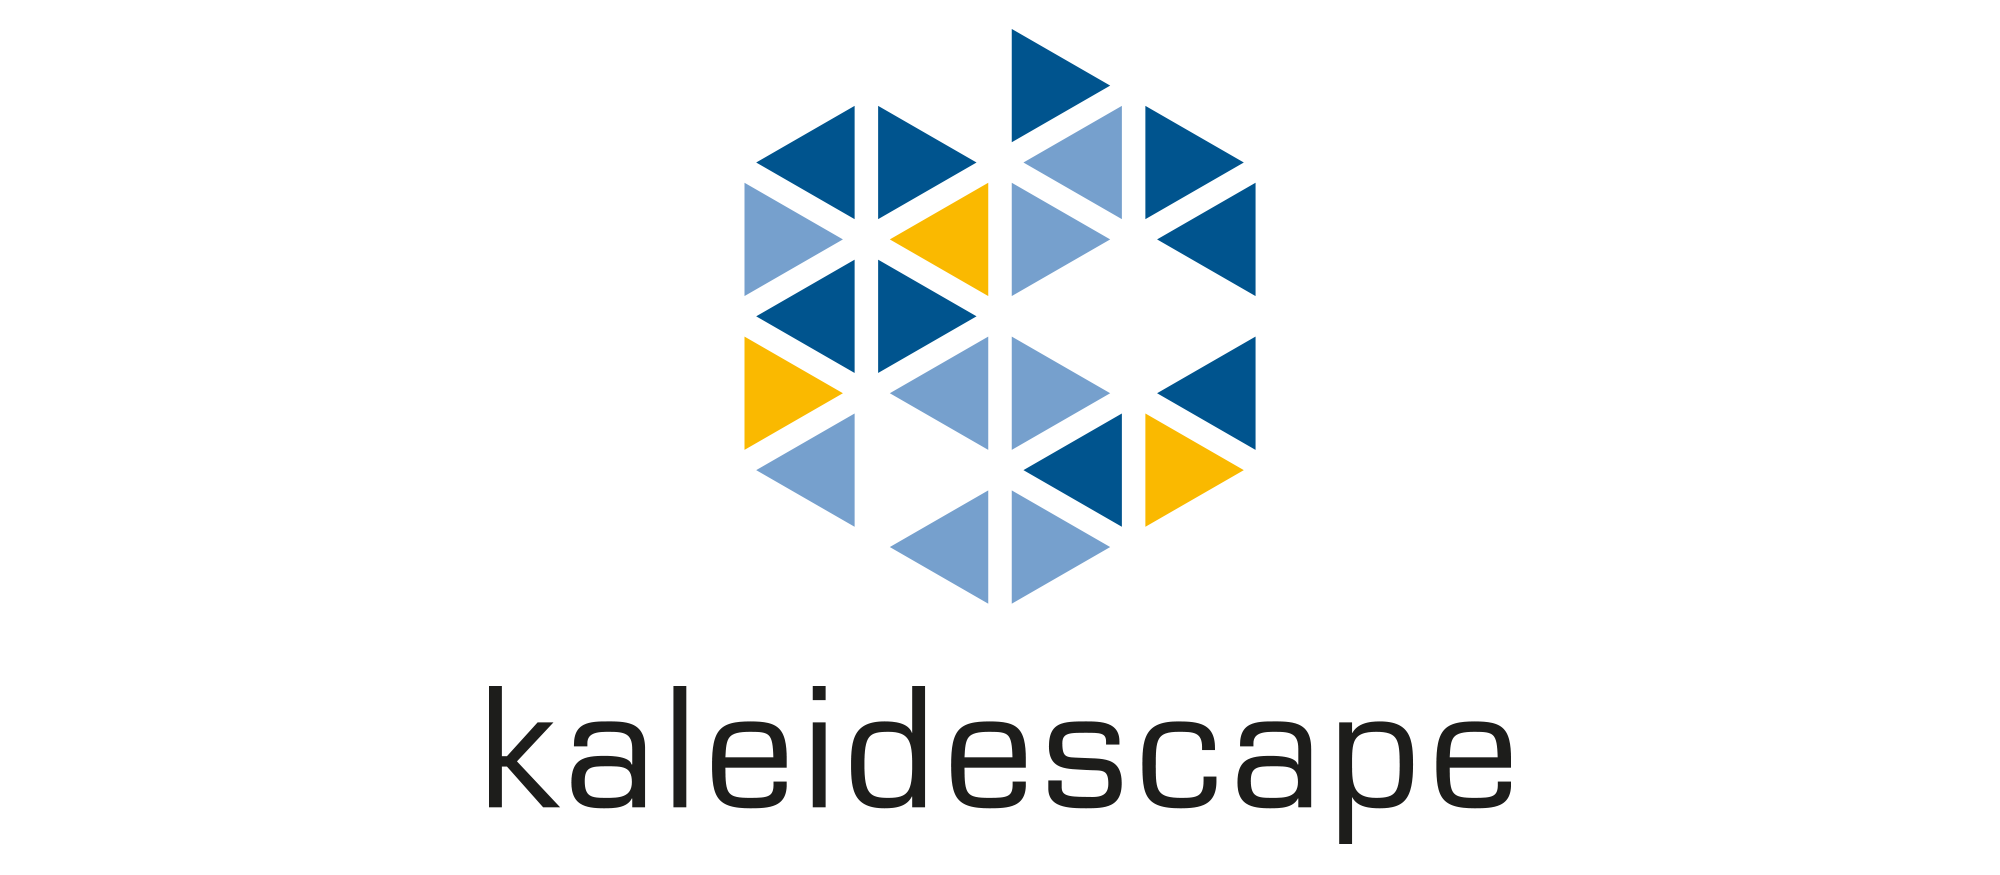 KAleidEscApe - Kaleidescape's home theater systems offer unmatched picture quality & the most dynamic sound found in a movie player.